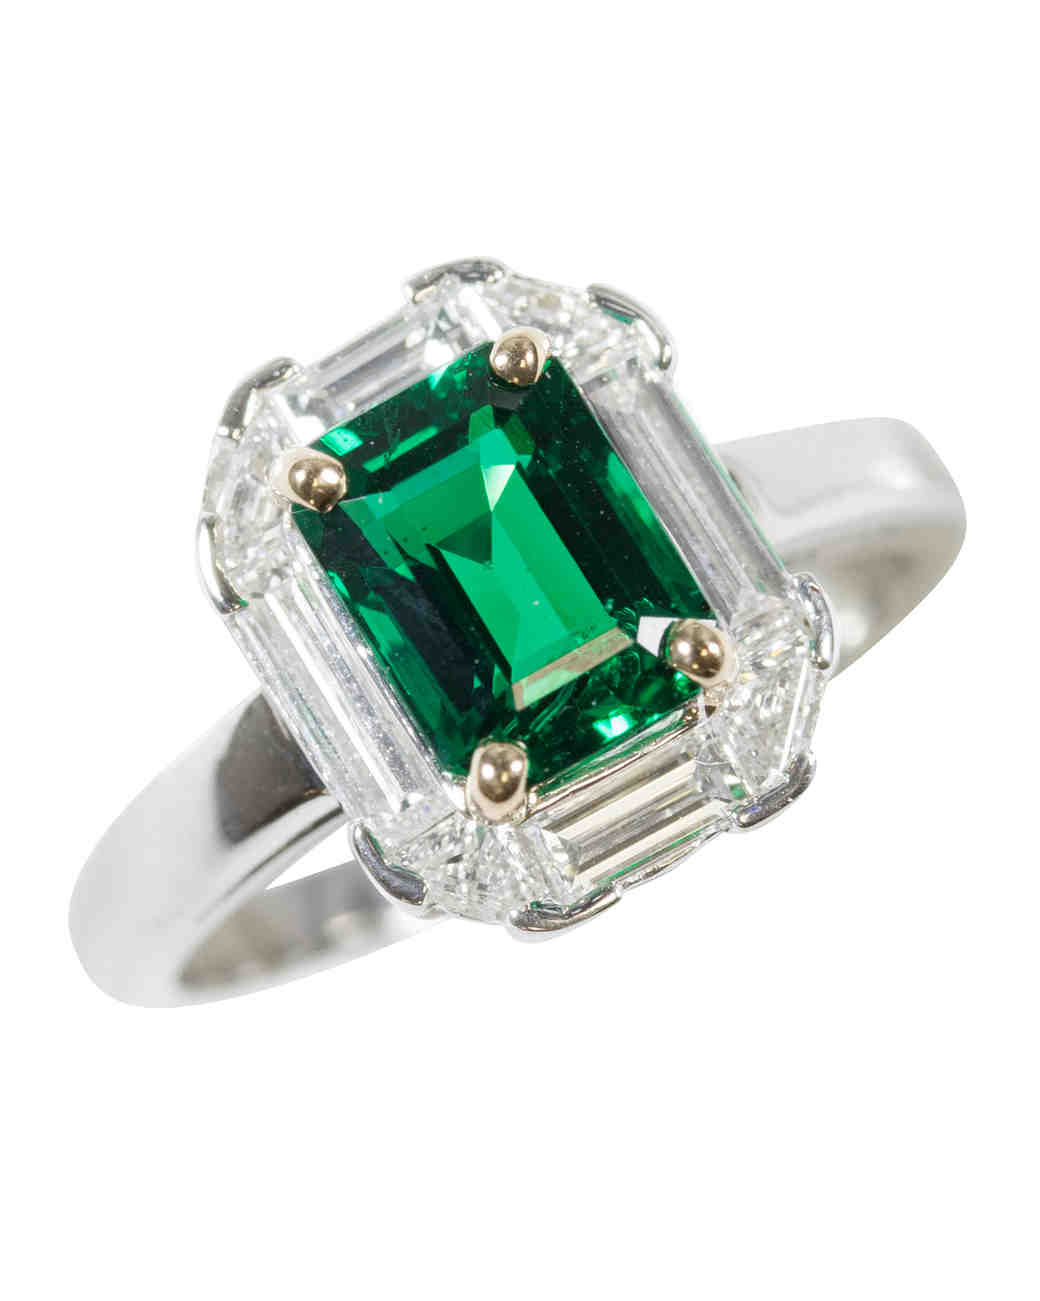 Oscar Heyman Emerald Engagement Ring